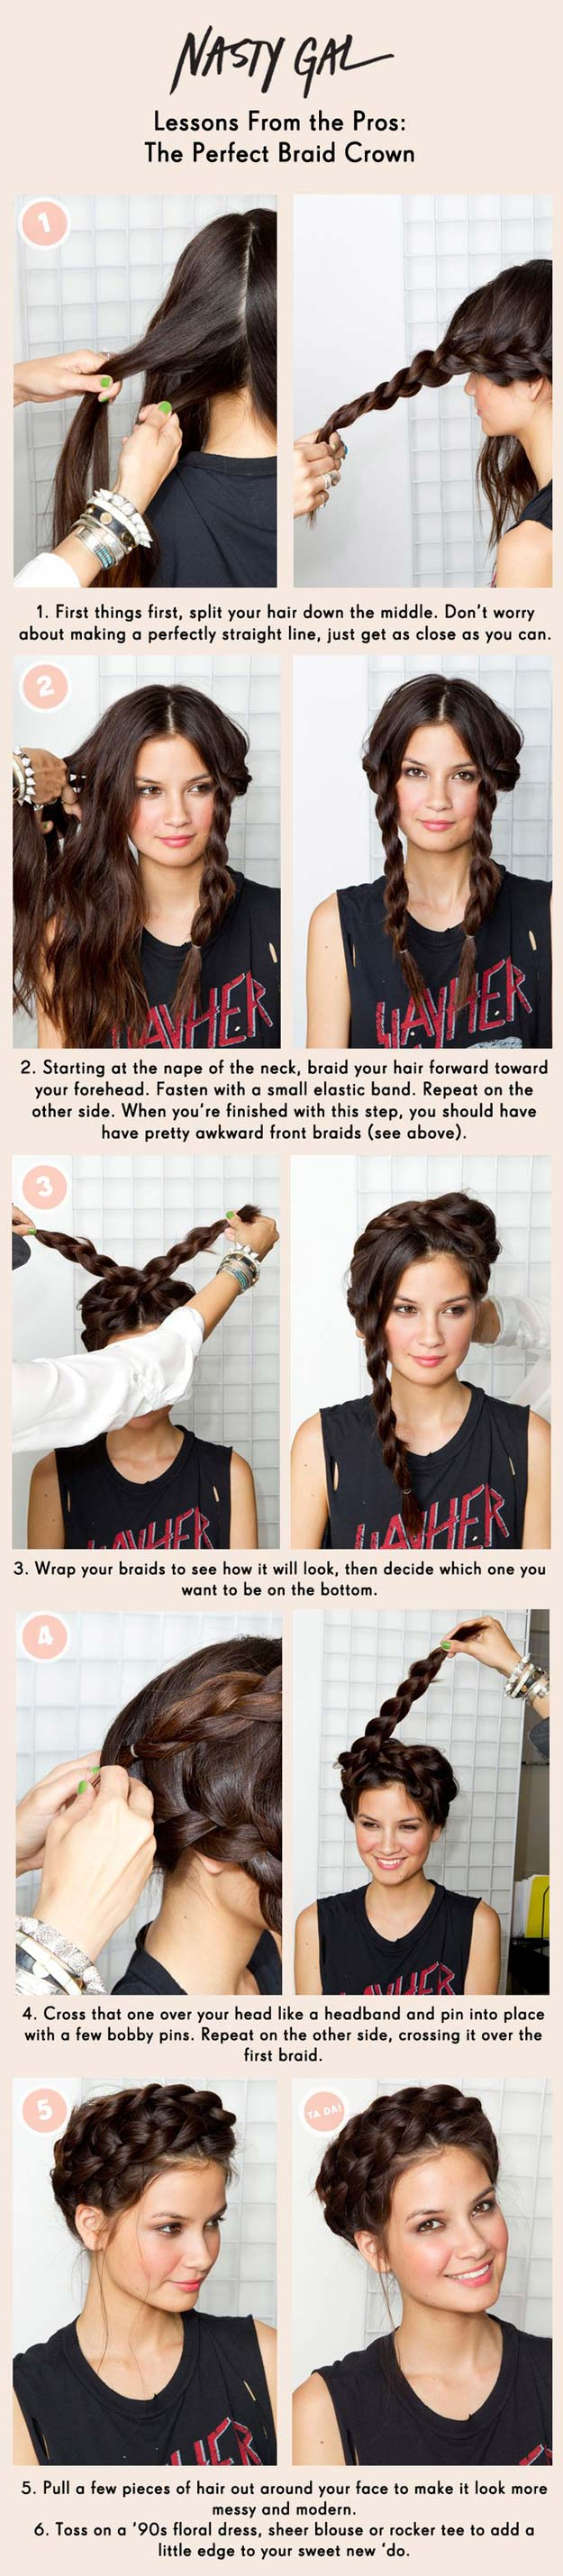 Cool 41 Diy Cool Easy Hairstyles That Real People Can Actually Do At Short Hairstyles Gunalazisus